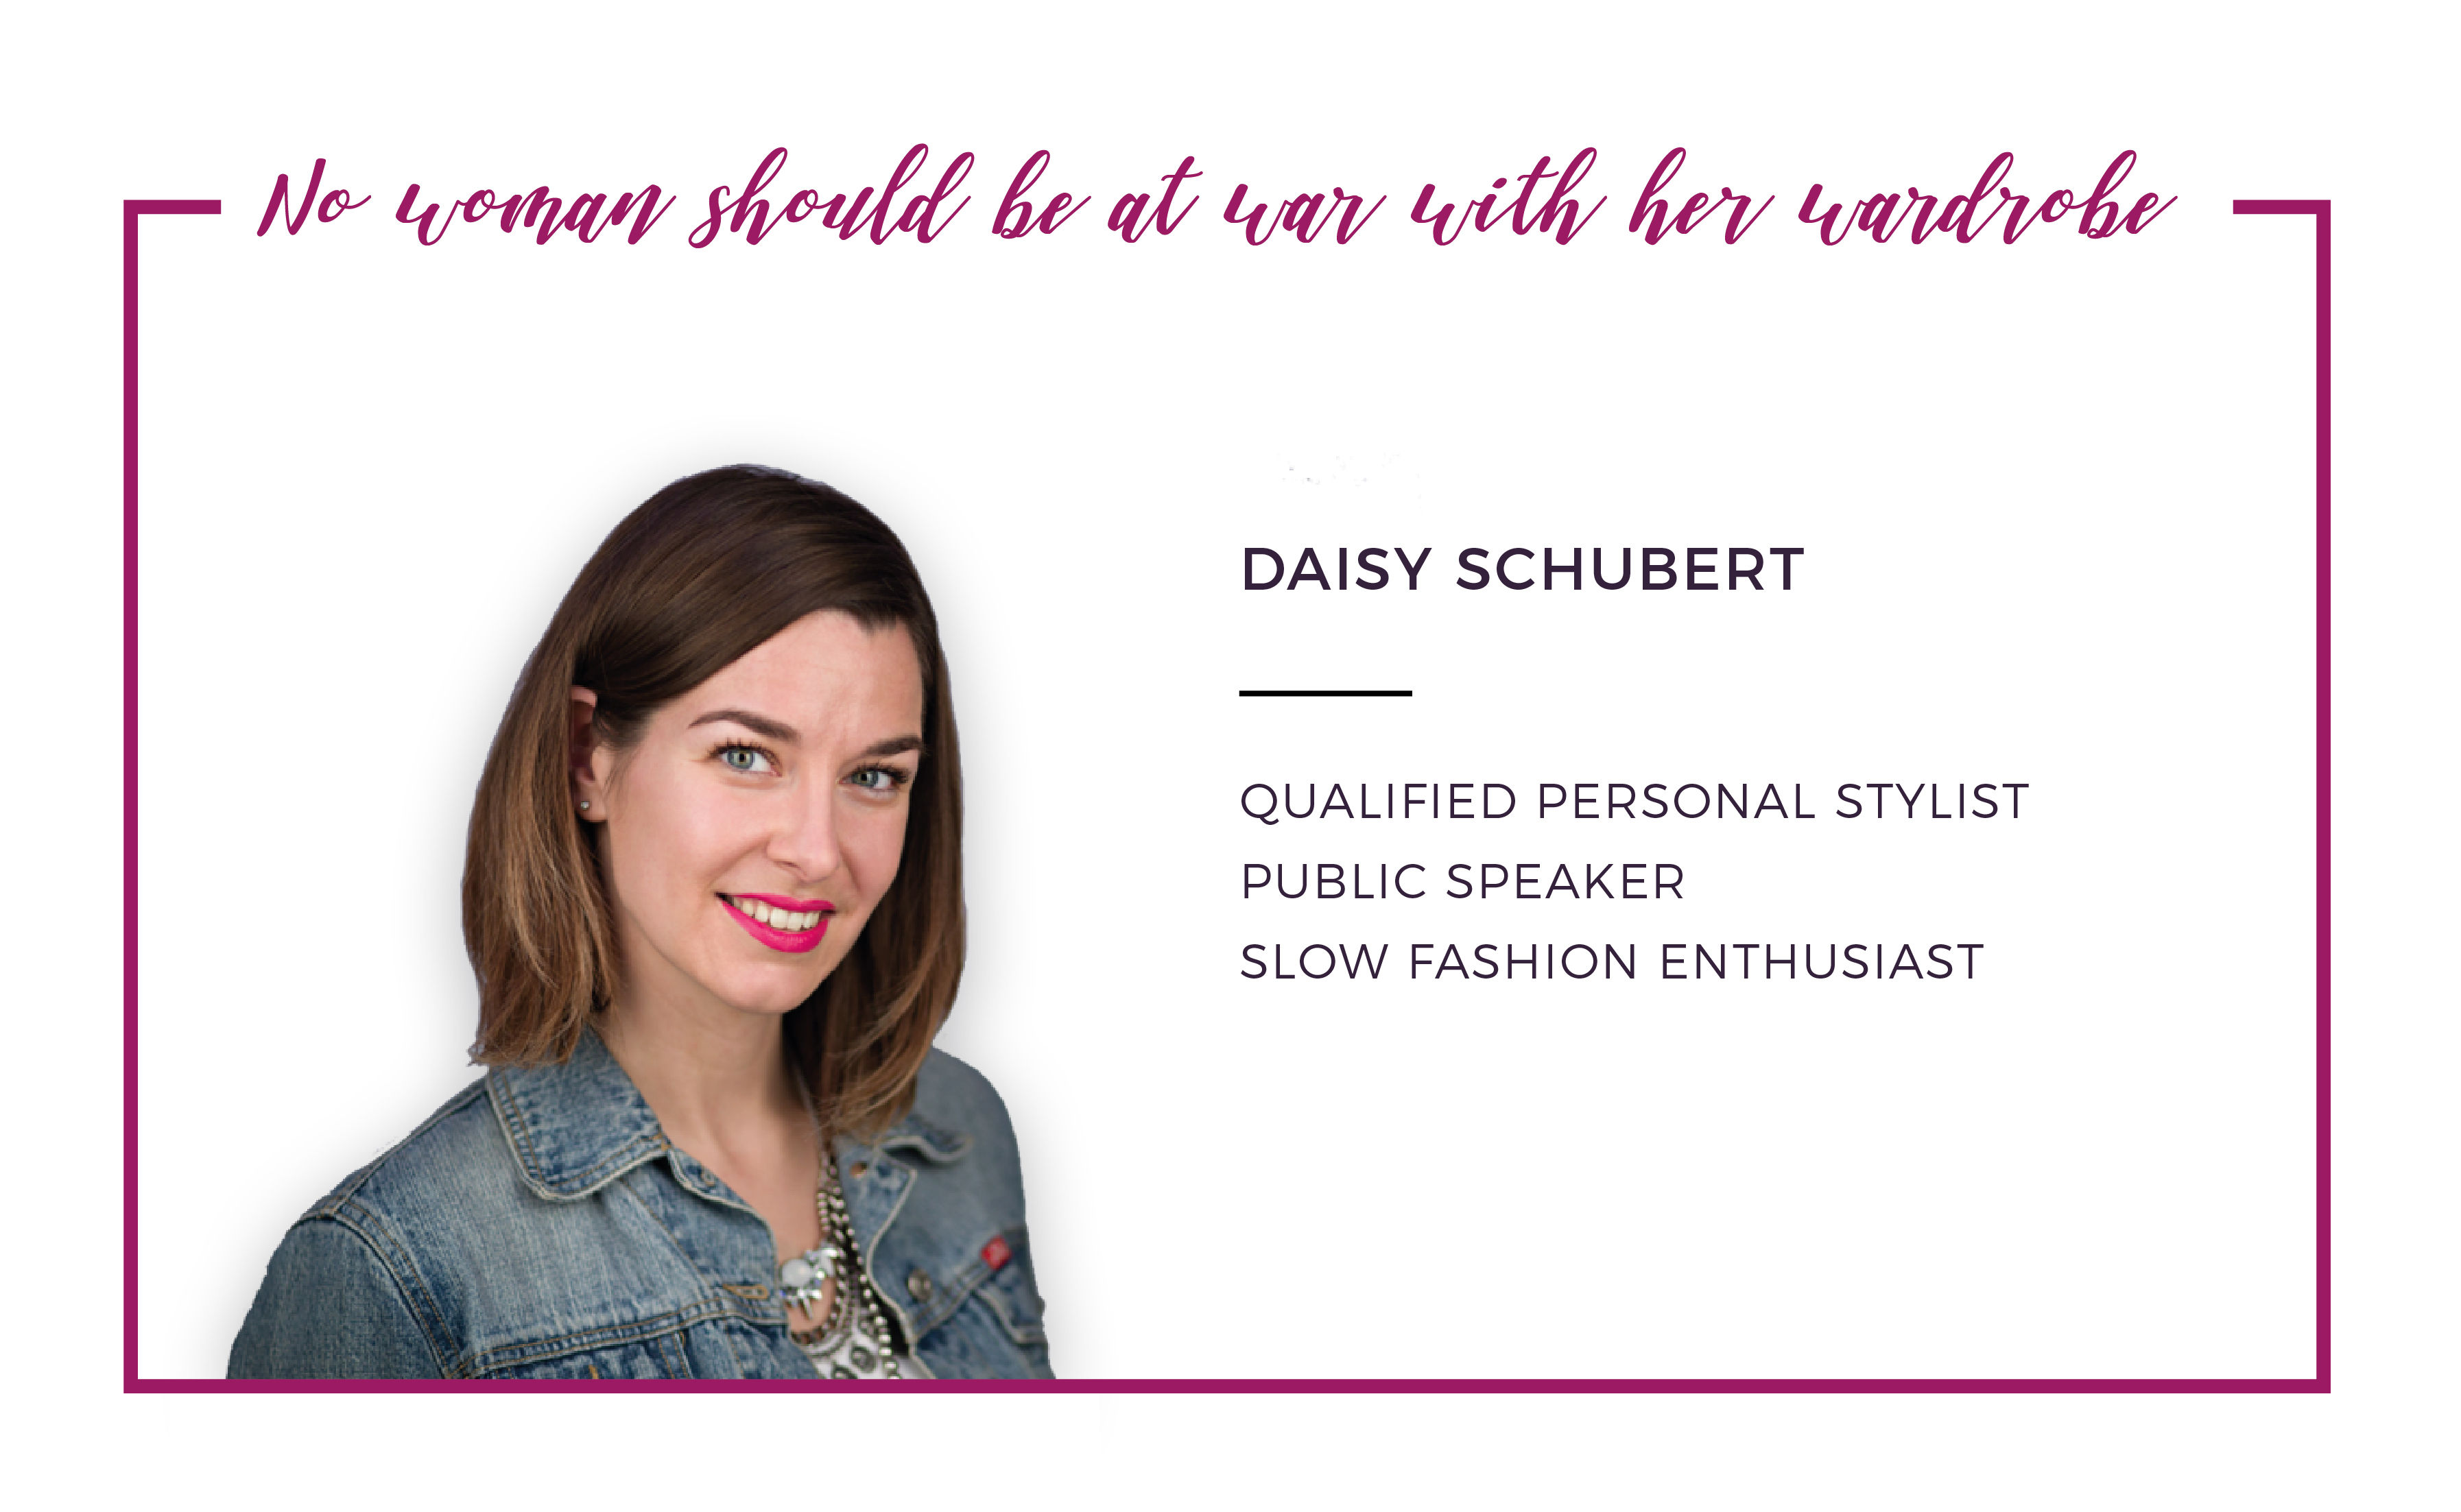 About Daisy Schubert